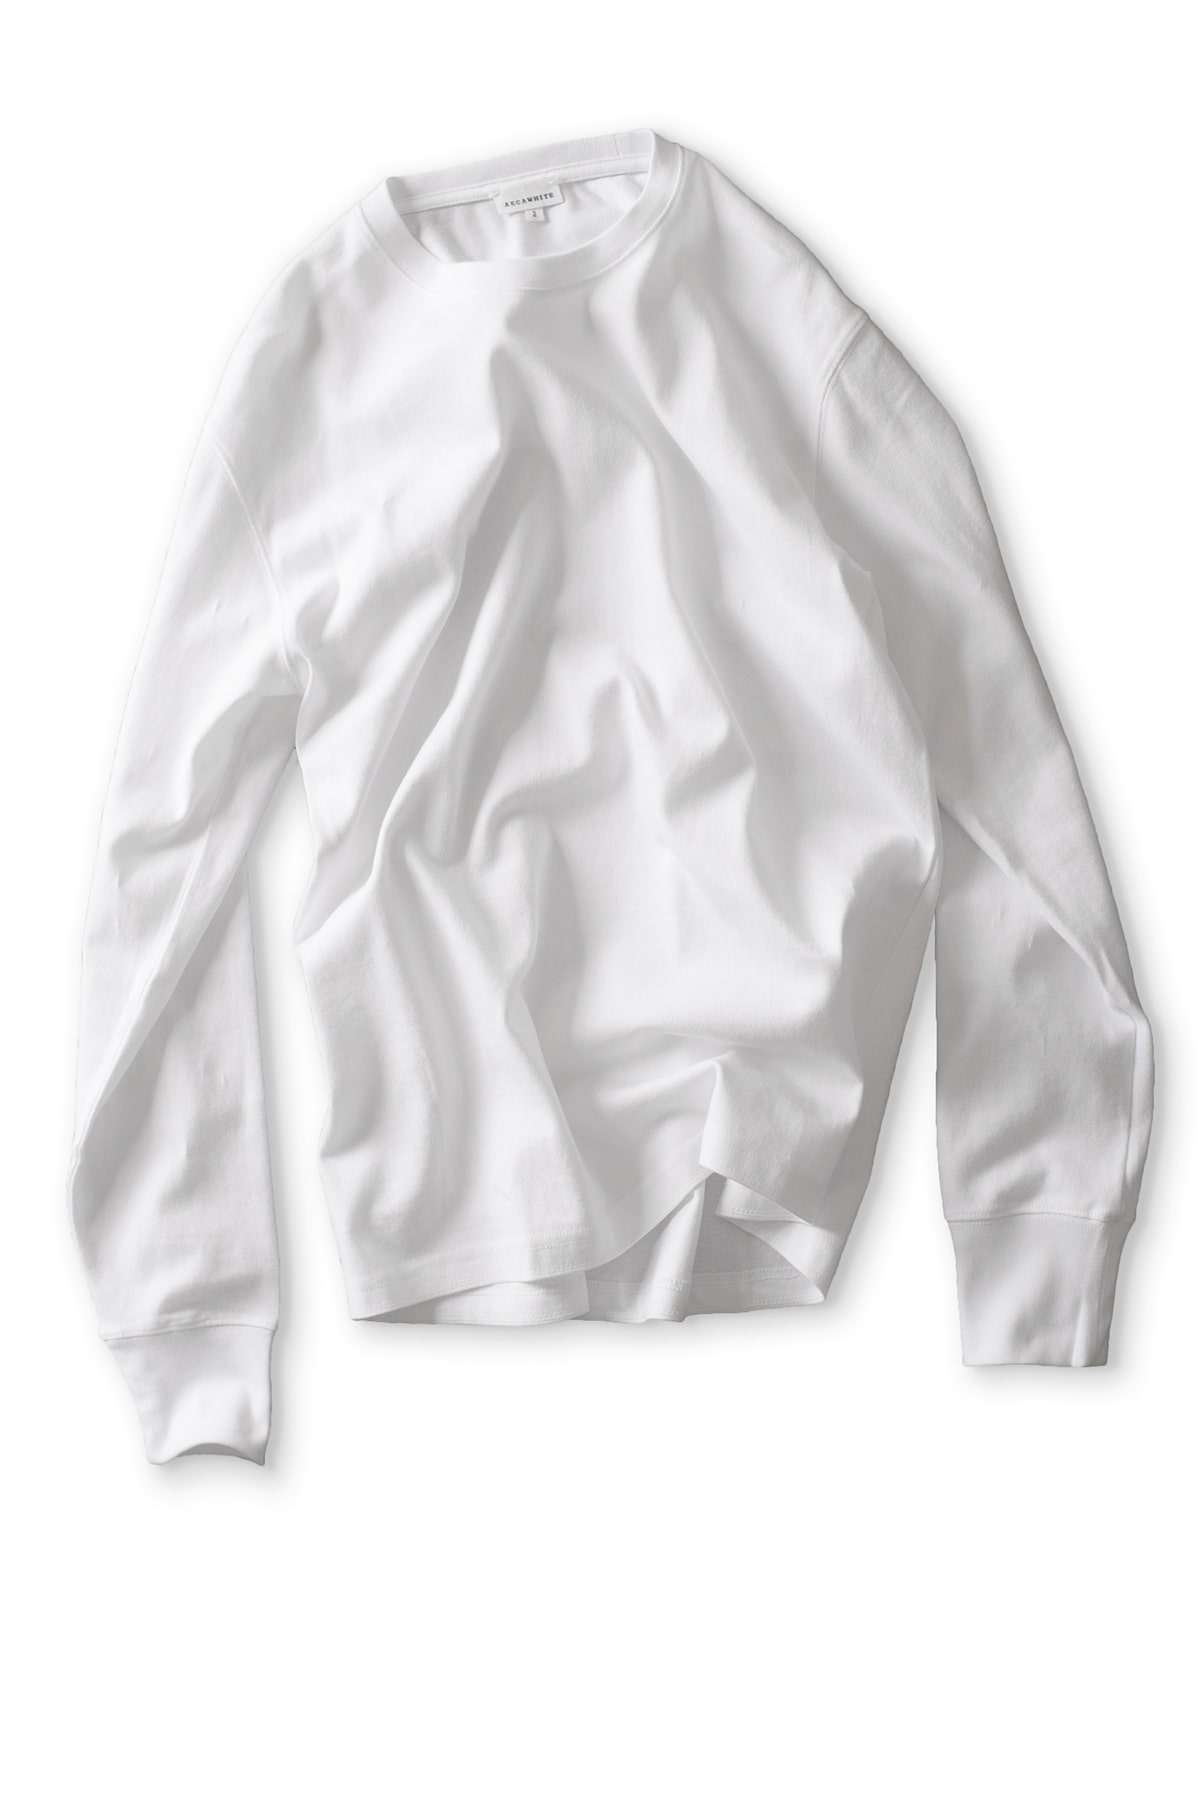 AECA WHITE : Long Sleeve Tee (White)